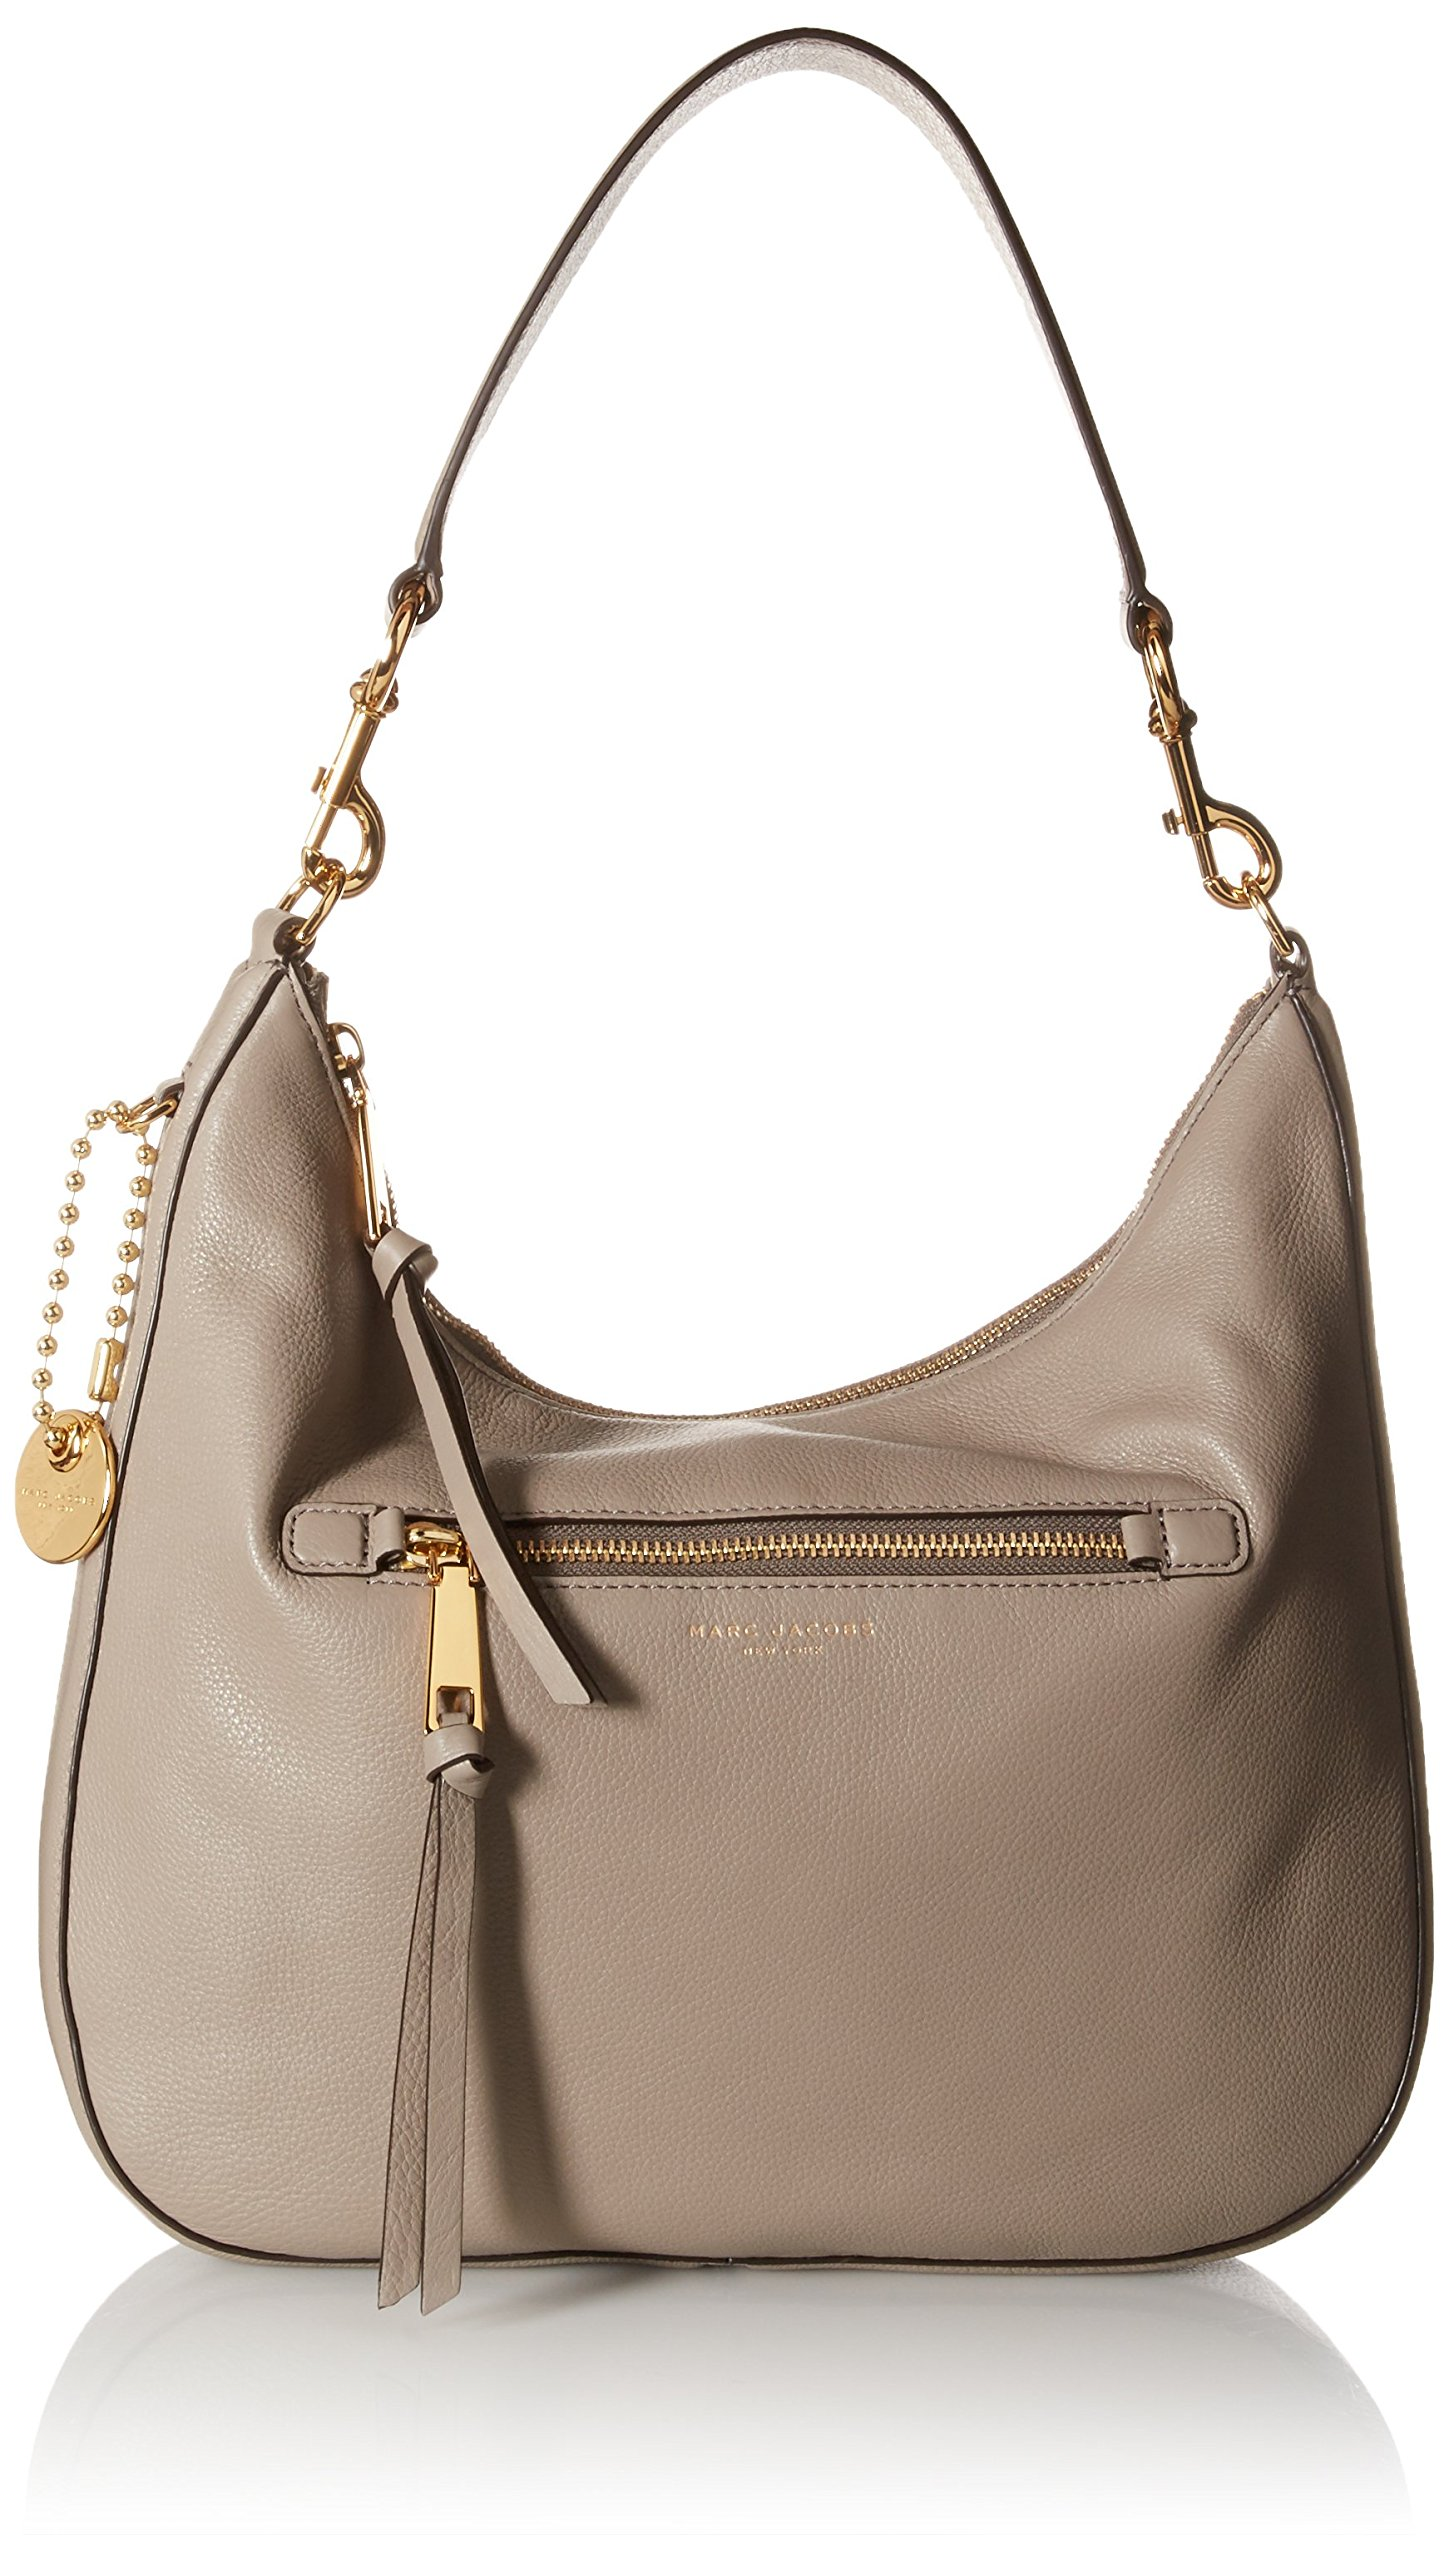 Marc Jacobs Recruit Hobo, Mink